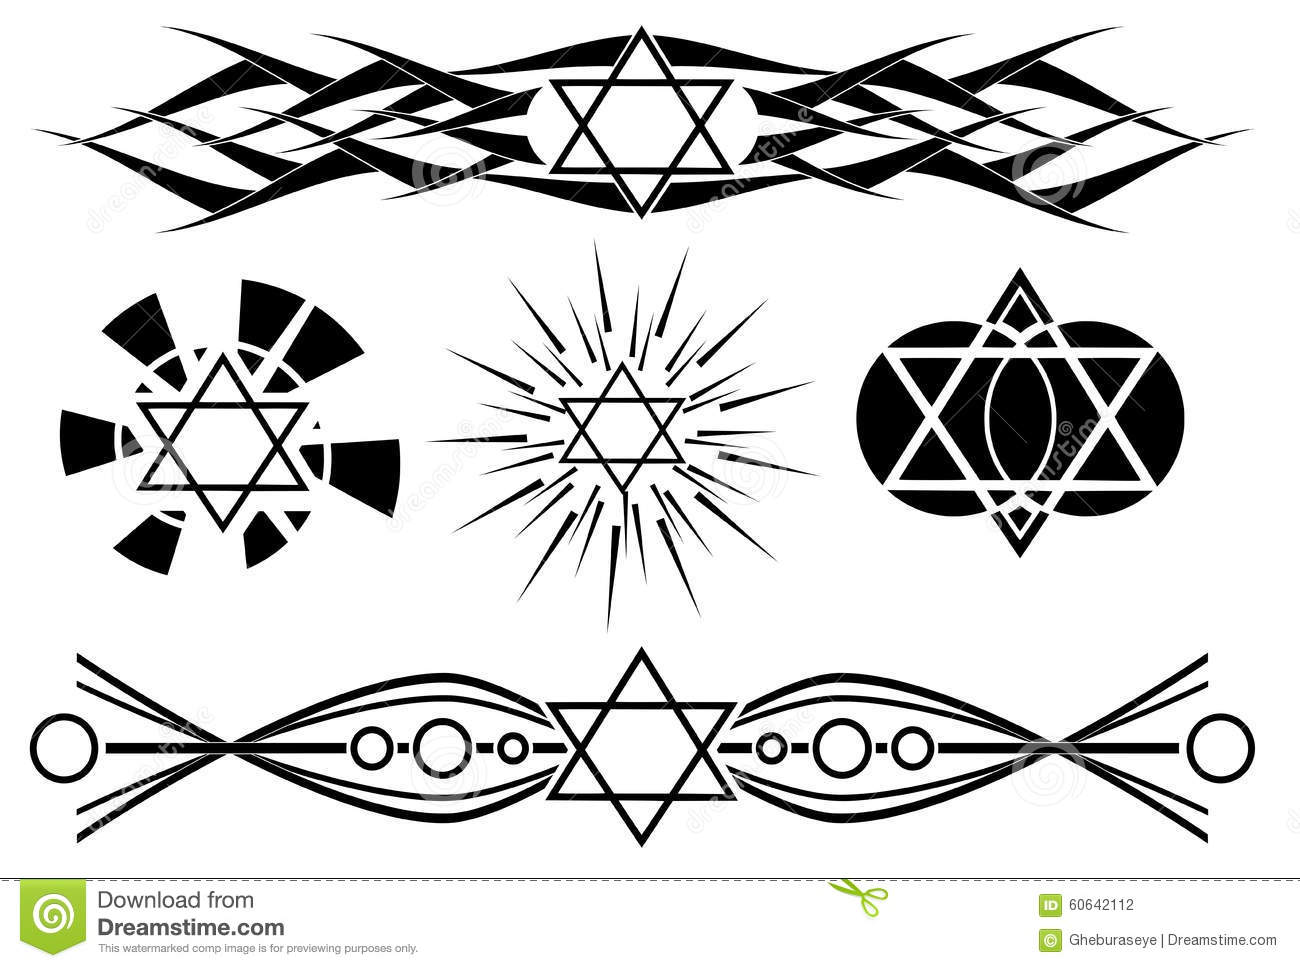 Star of david tattoo in black isolated stock vector for Star of david tattoo designs